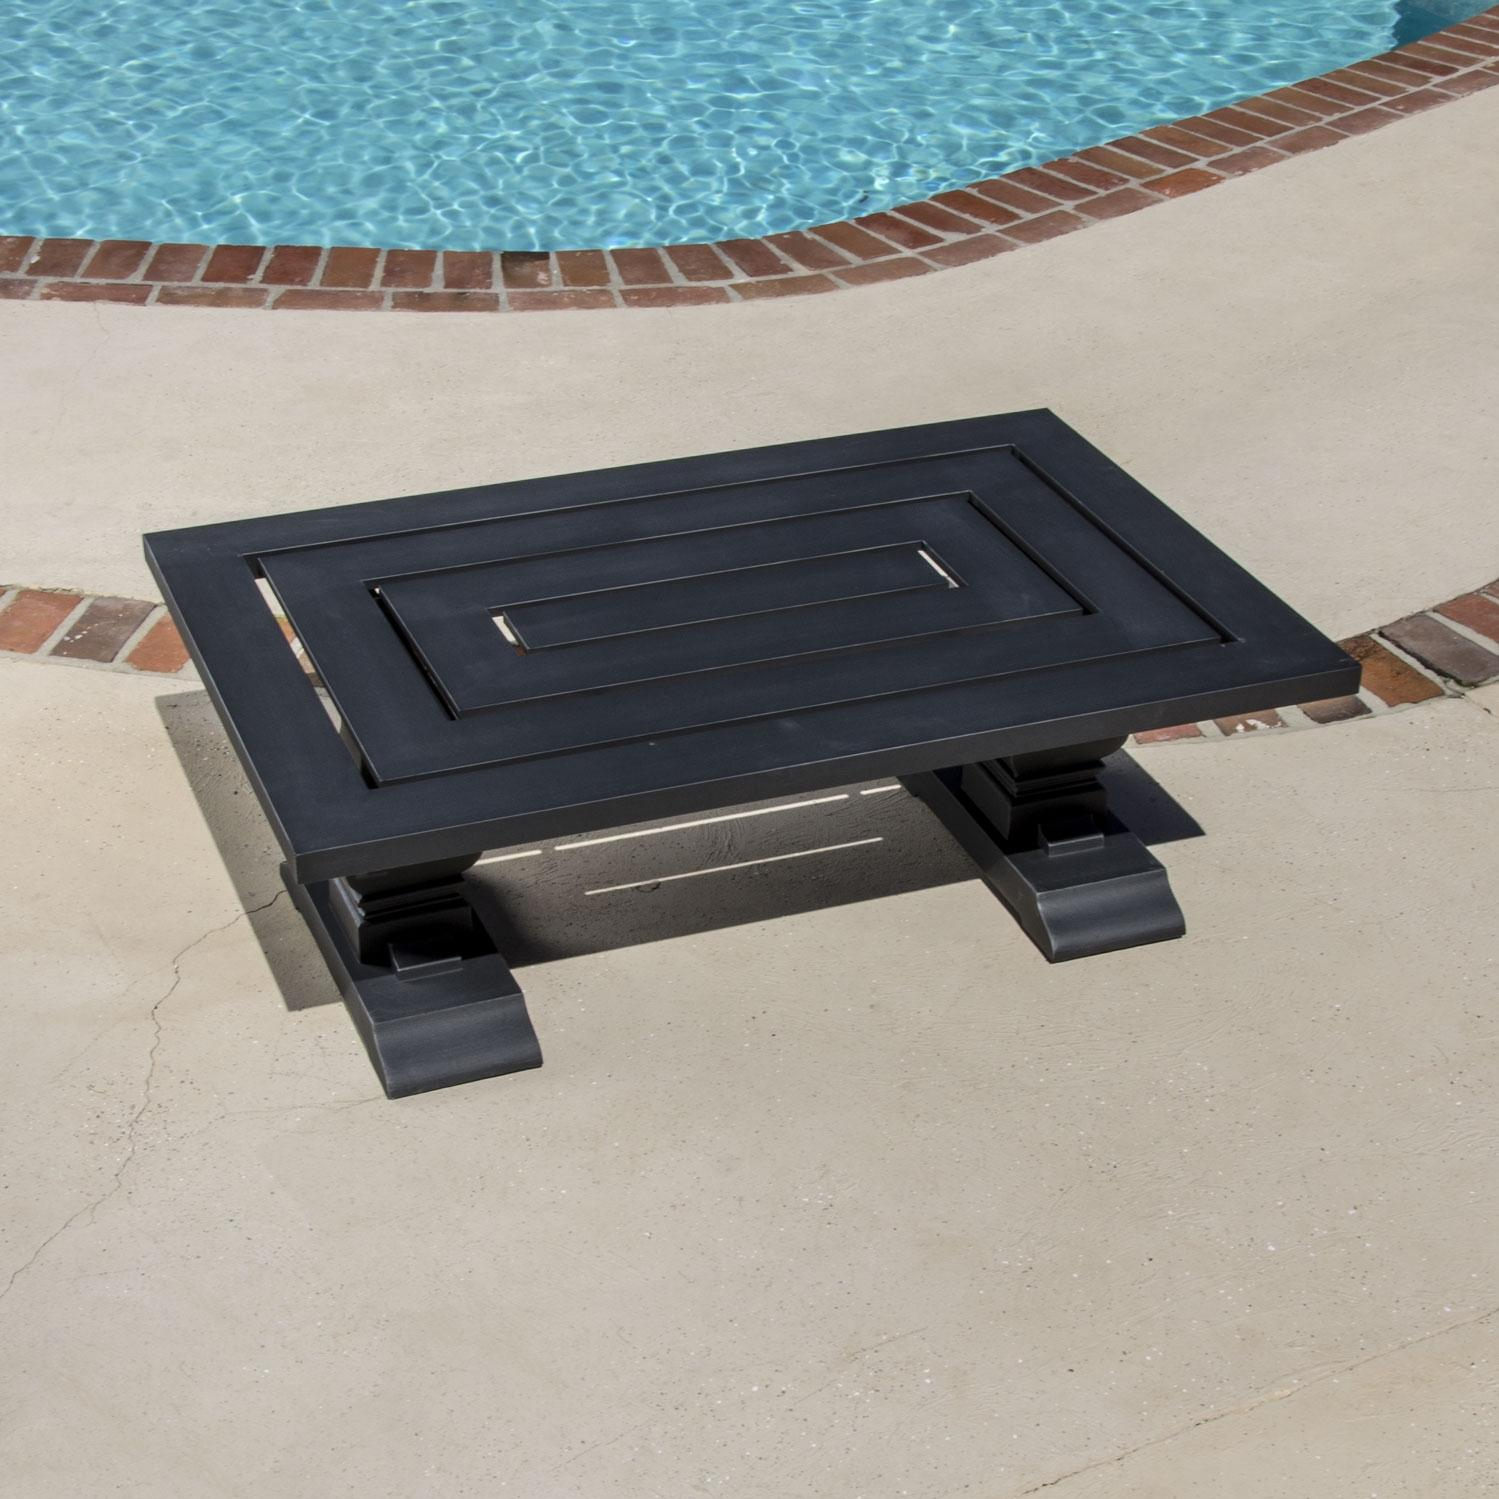 Lakeview Outdoor Designs St. Charles Cast Aluminum Patio Coffee Table at Sears.com